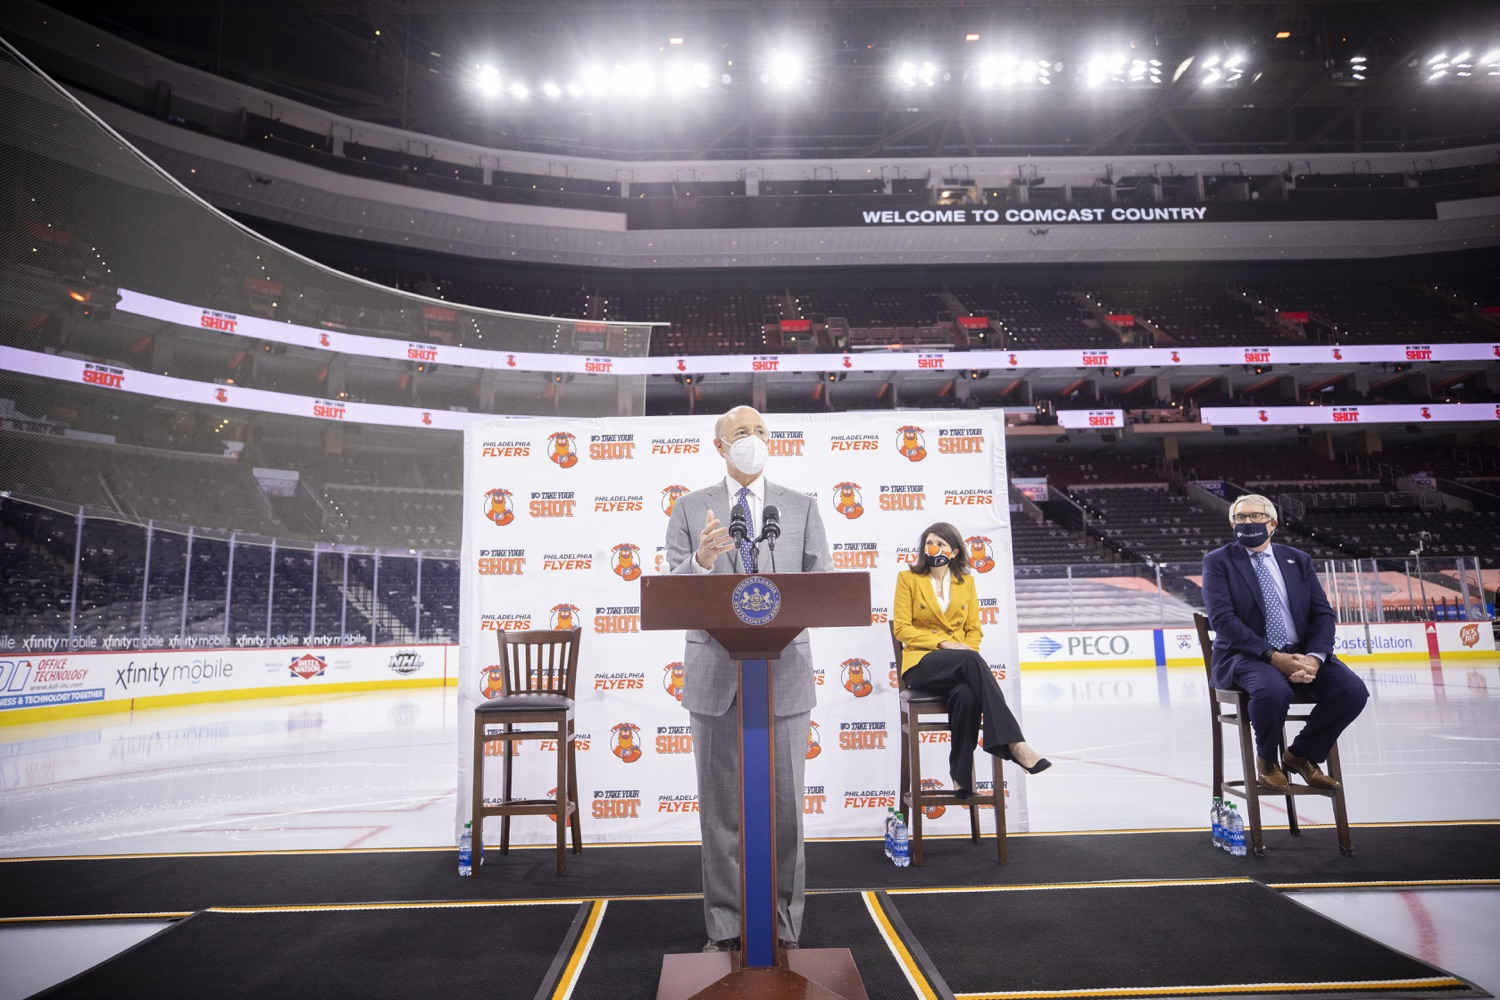 "<a href=""https://filesource.wostreaming.net/commonwealthofpa/photo/18727_gov_vaccines_dz_016.jpg"" target=""_blank"">⇣ Download Photo<br></a>Pennsylvania Governor Tom Wolf speaking with the press.   Governor Tom Wolf today visited the Philadelphia Flyers organization at the Wells Fargo Center in Philadelphia to discuss COVID-19 vaccine efforts in Pennsylvania. The Flyers recently launched a comprehensive COVID-19 vaccine campaign, Take Your Shot, encouraging Pennsylvanians to get vaccinated.  Philadelphia, PA  MAY 3, 2021"